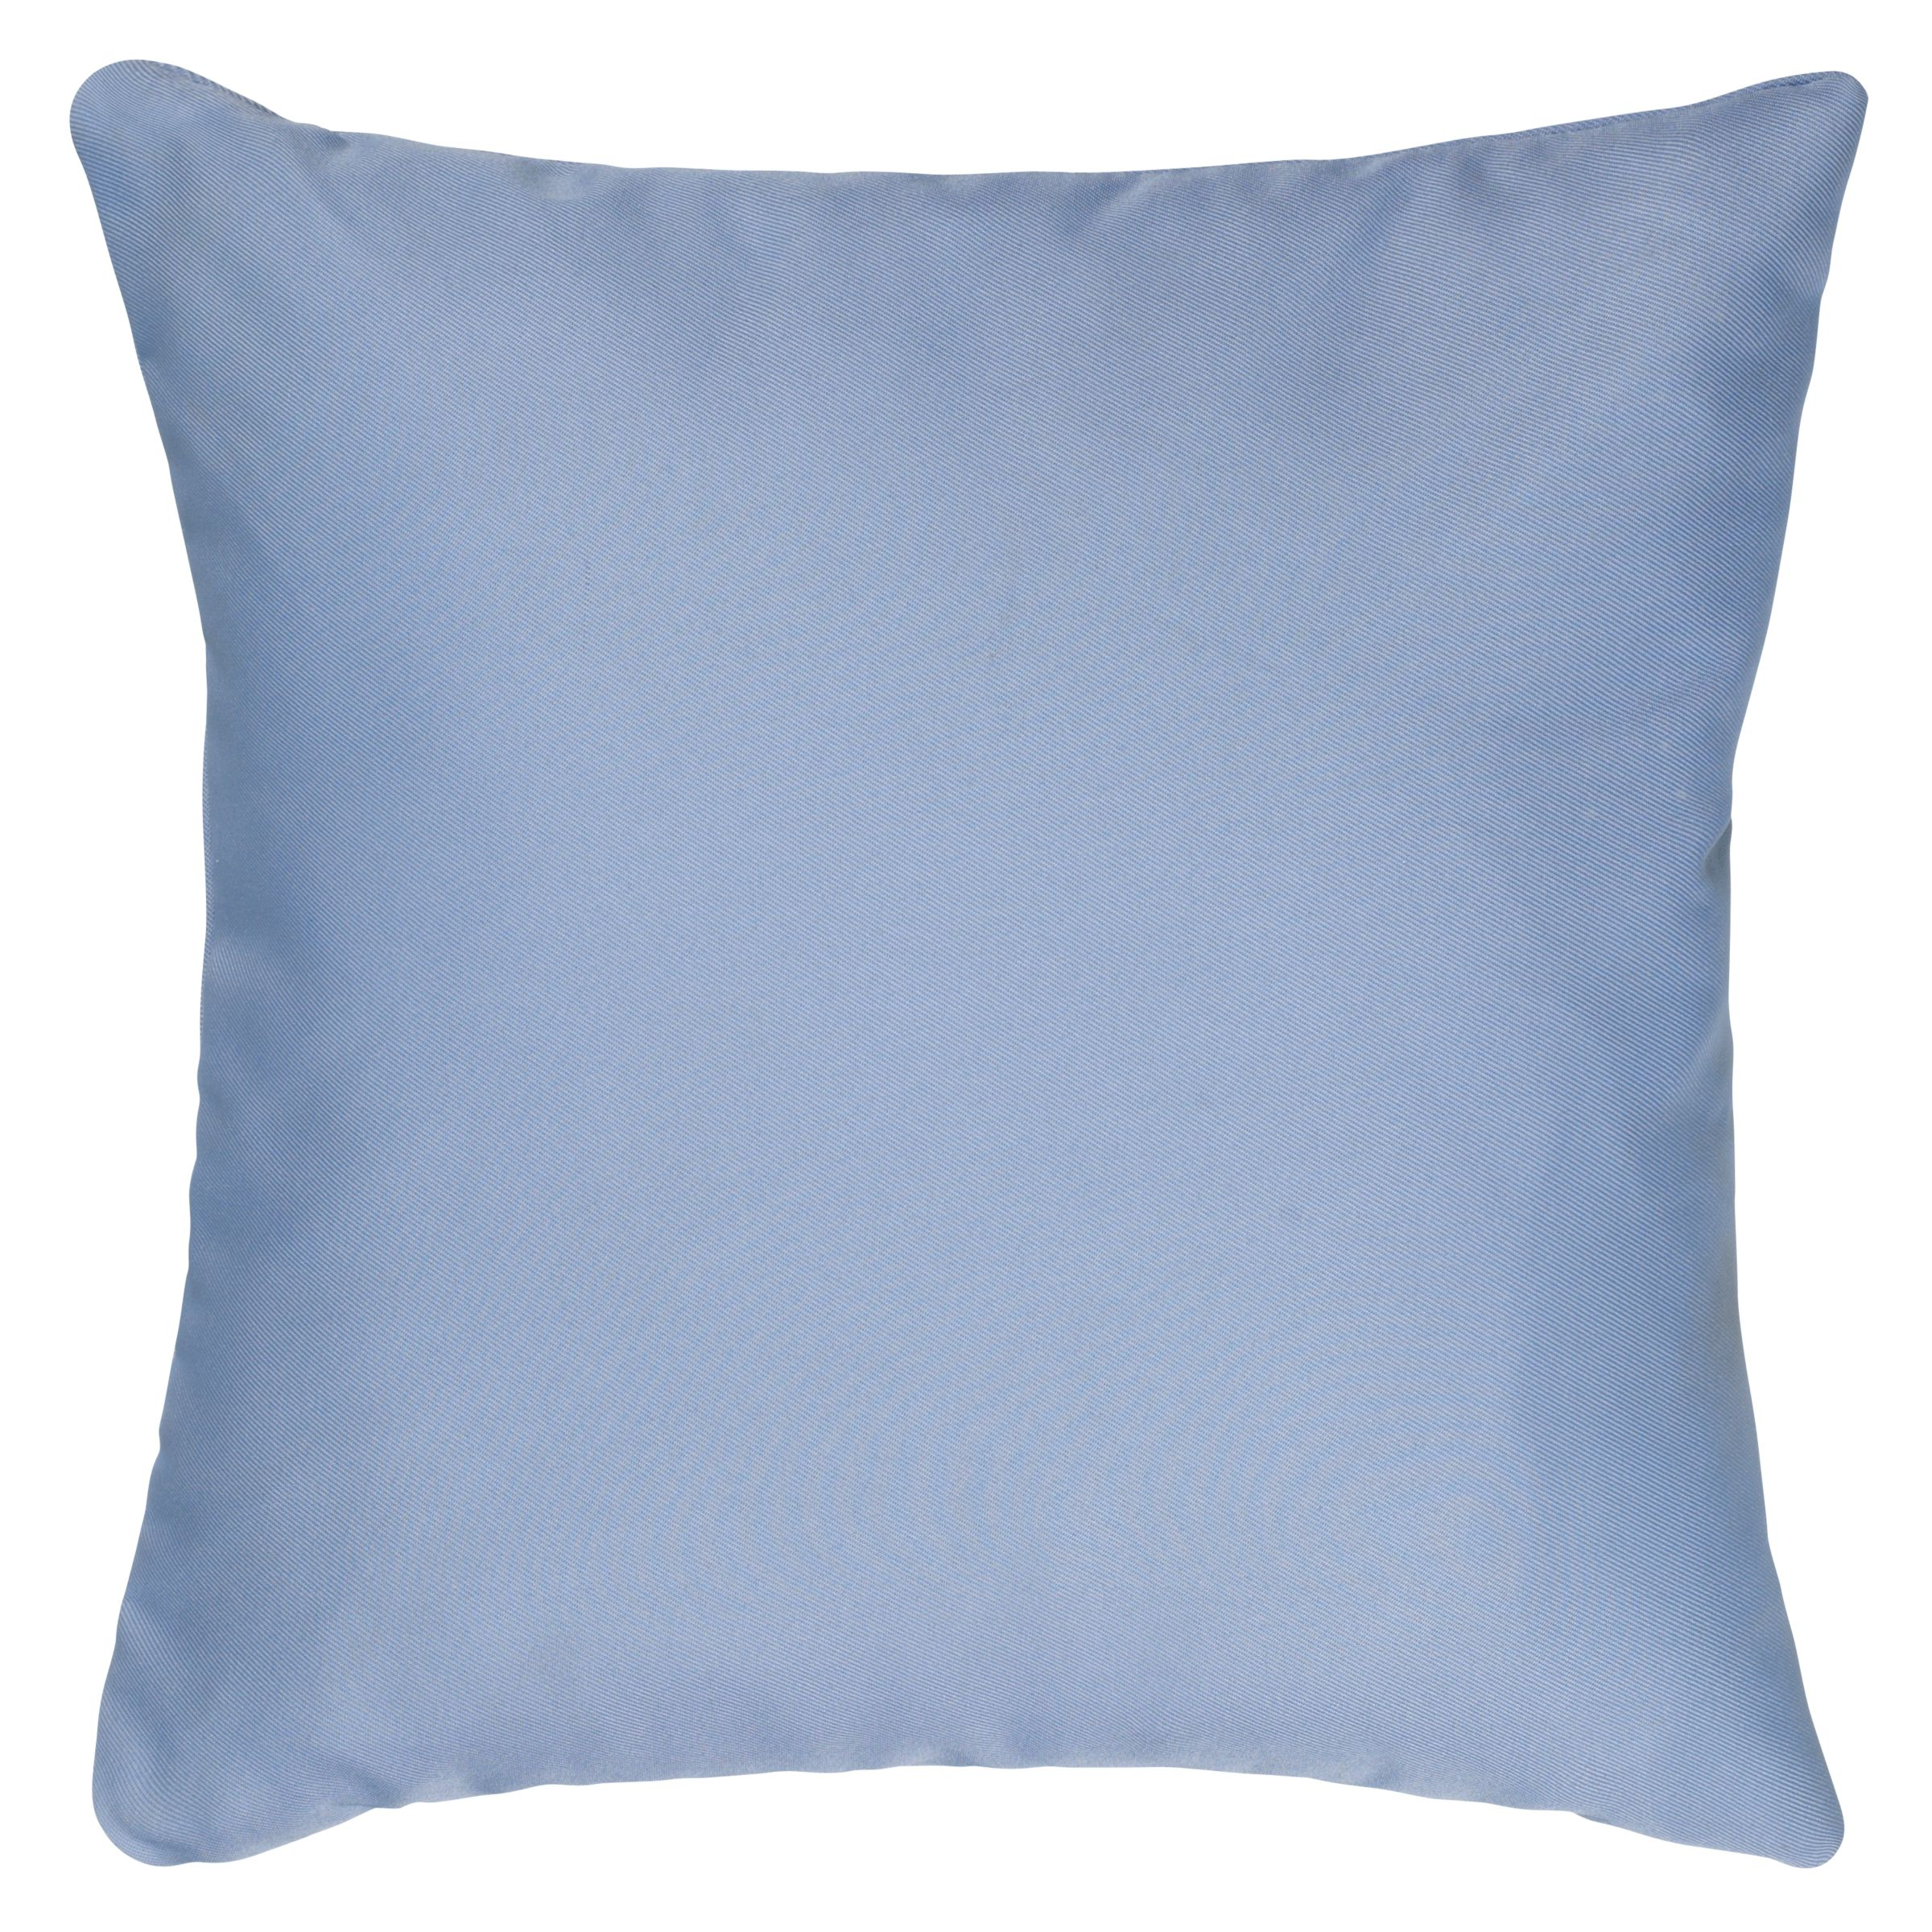 Square Scatter Cushion, Wedgwood